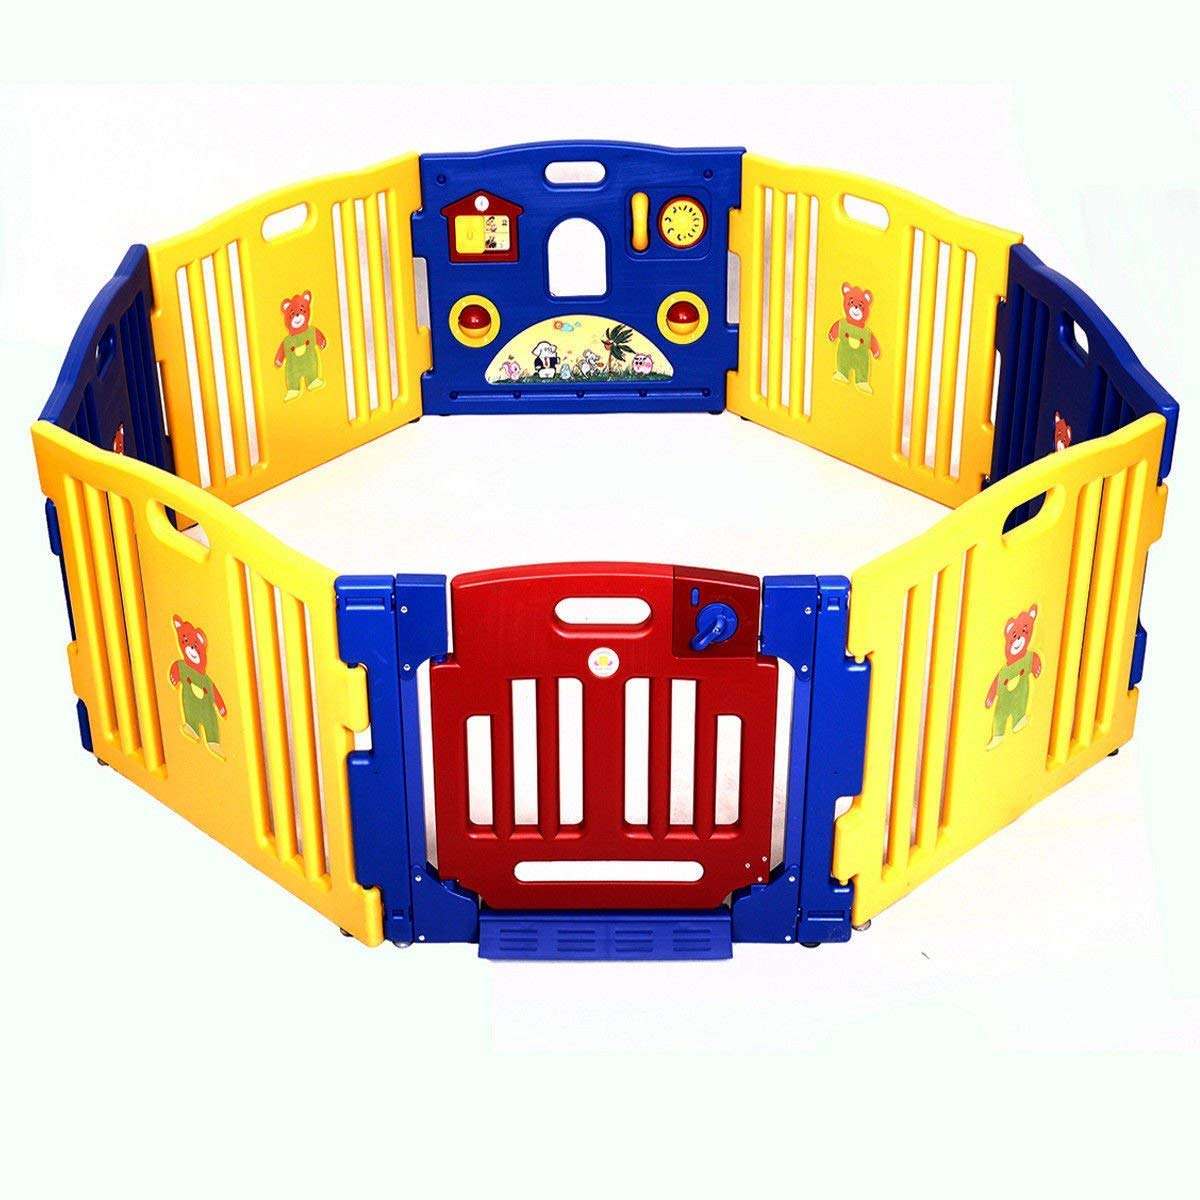 Costzon Baby Playpen, Kids Safety Activity Center Play Zone, Shape Adjustable Playpen with Activity Board & Secure Locking System (8 - Panel)